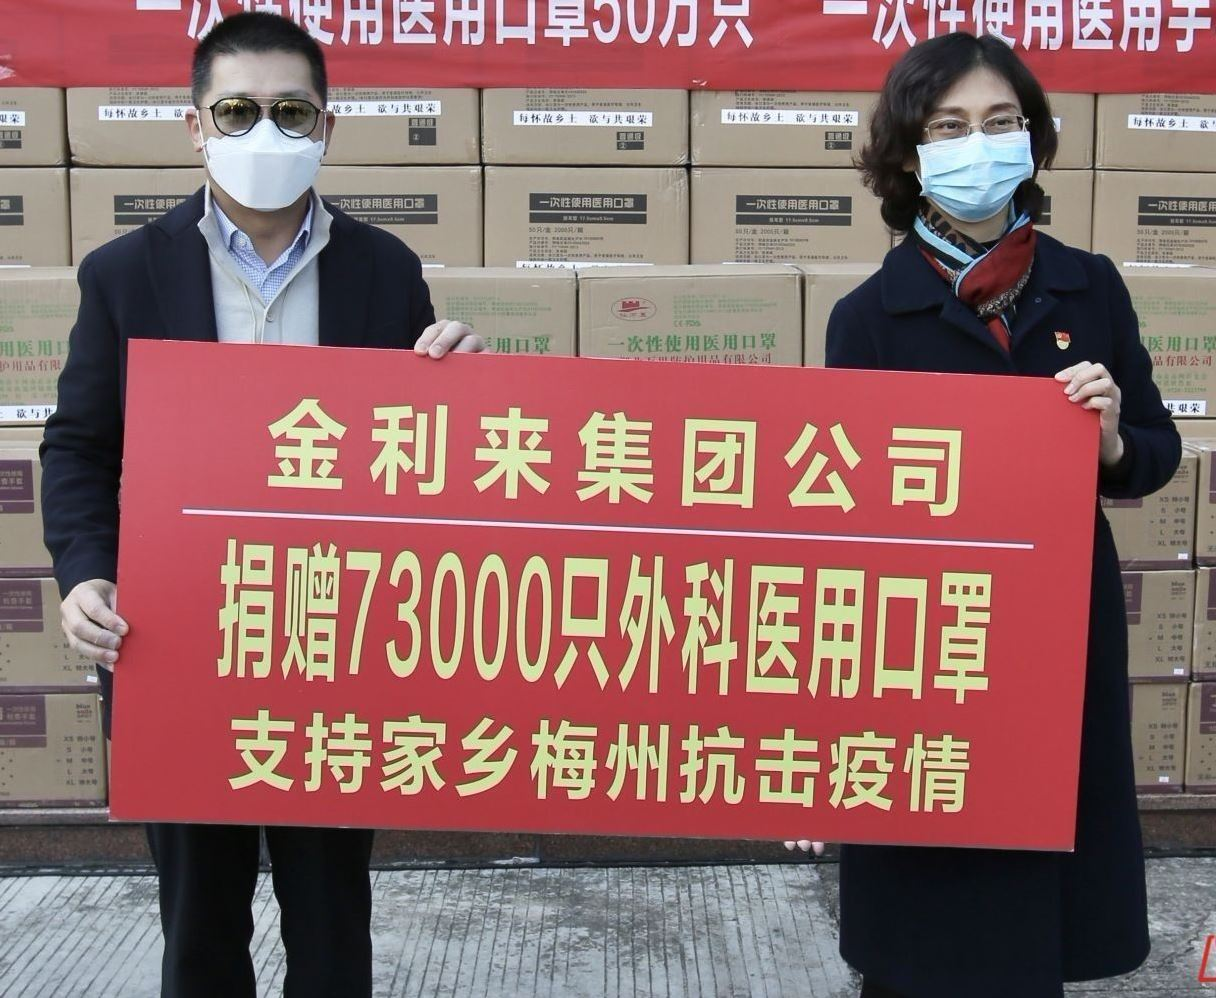 Mr.Ricky Tsang,on behalf of Goldlion,donated masks to the Meizhou medical staff